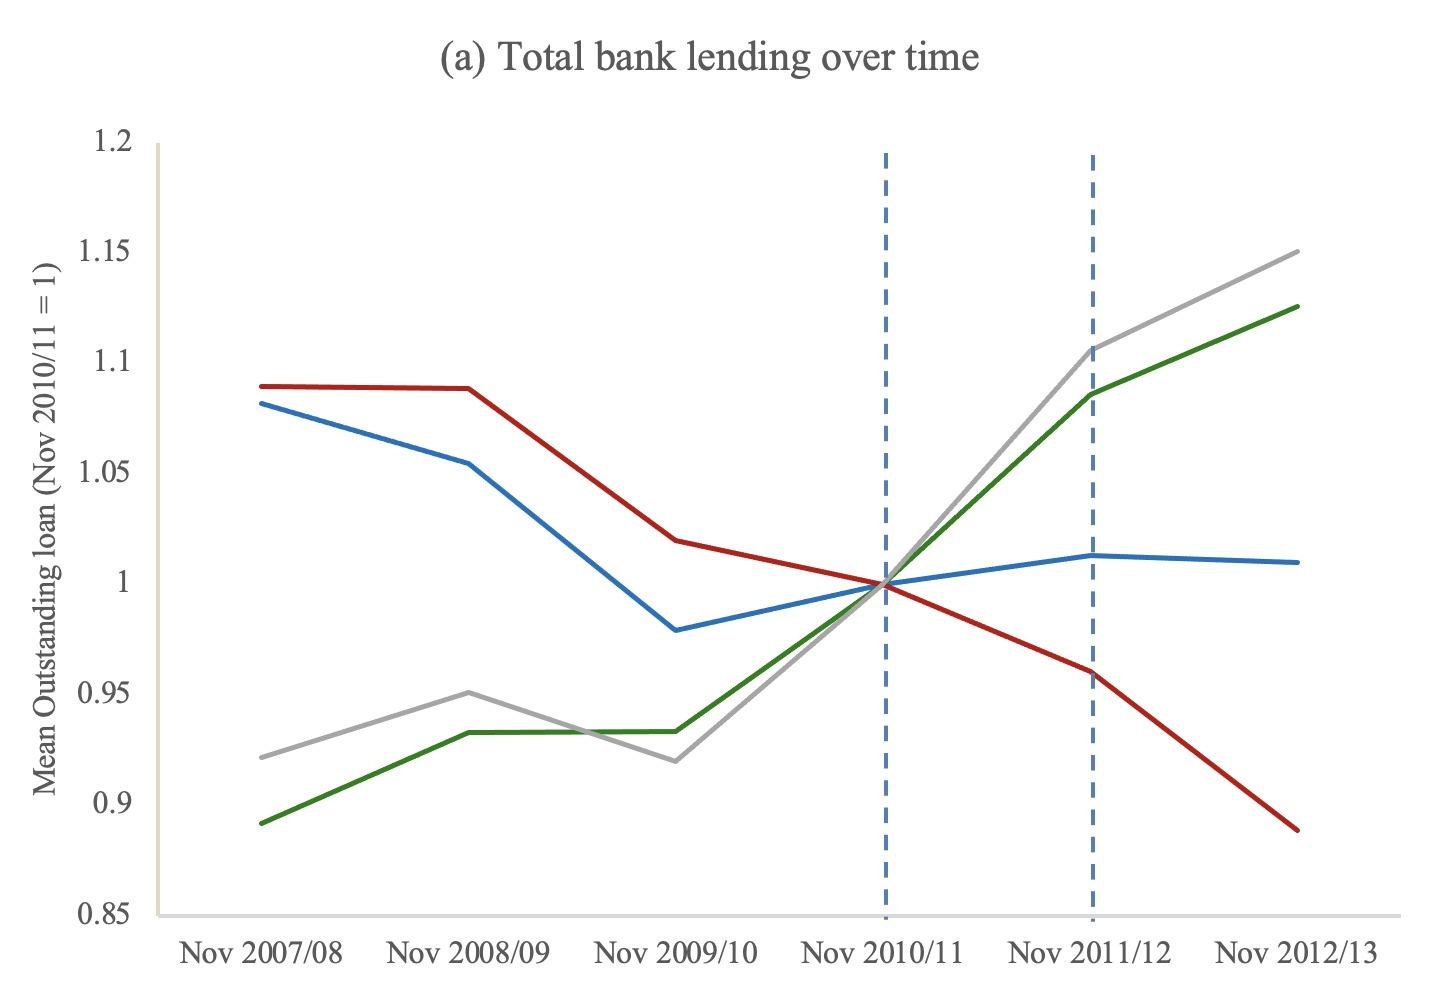 The effects of 'global systemically important bank' designation on corporate lending 2